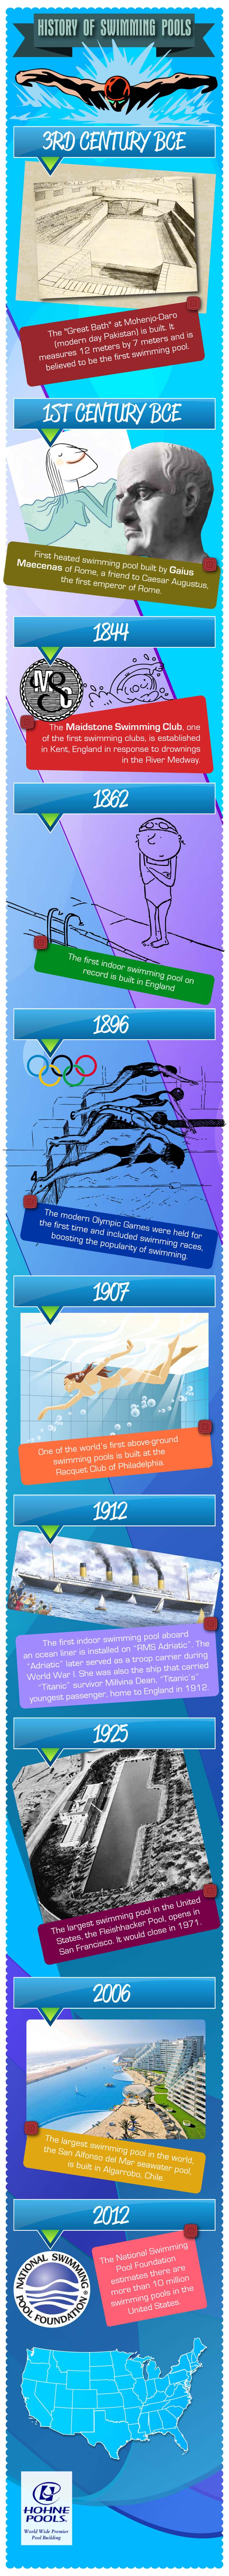 The History of Swimming Pools